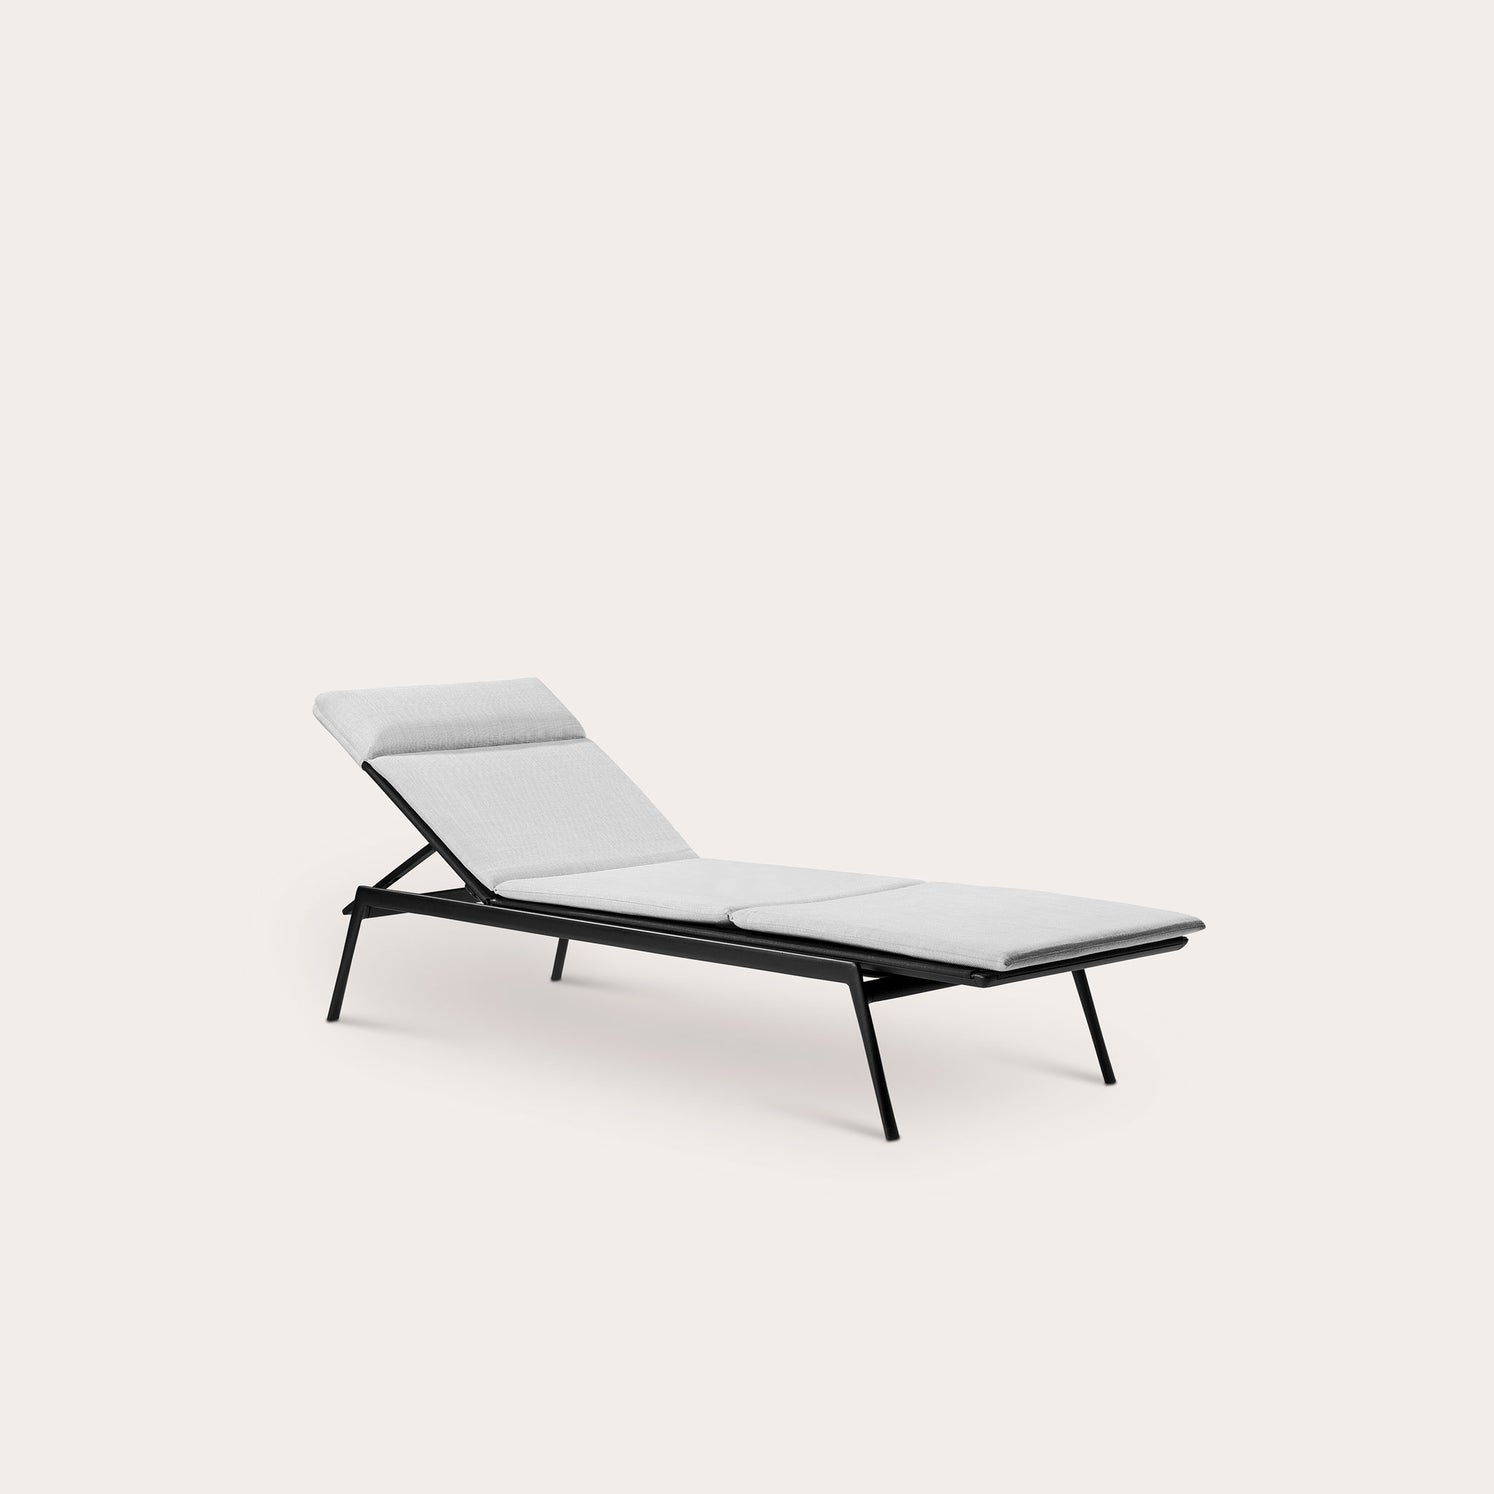 BRANCH Adjustable Lounger Outdoor Altherr Lievore Molina Designer Furniture Sku: 007-200-11921